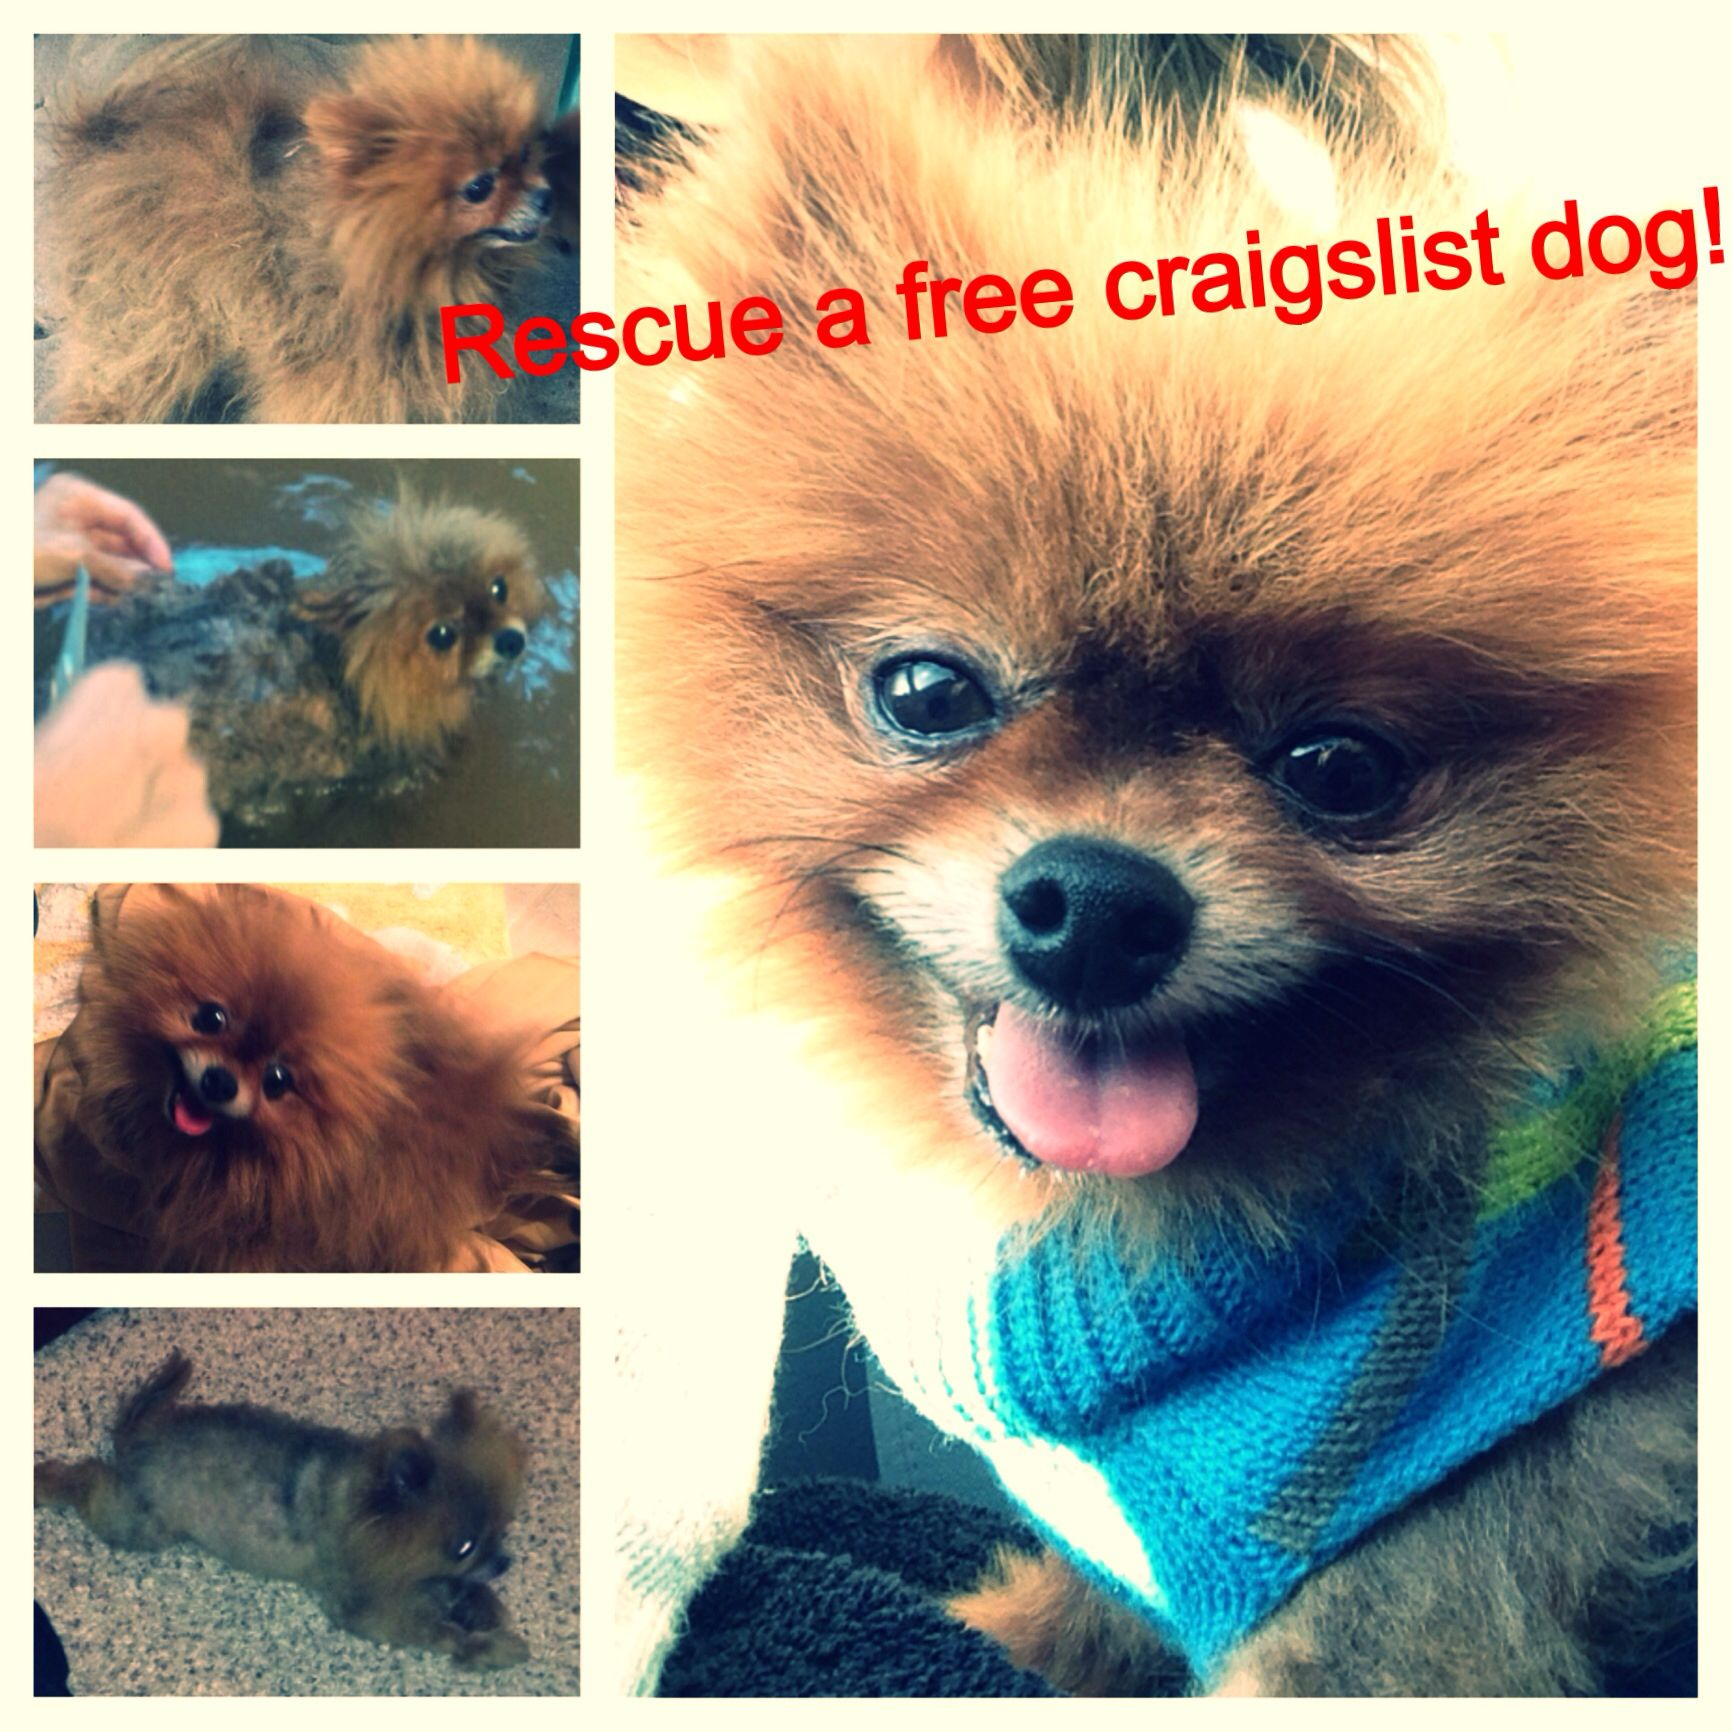 Dogs That Are Given Away On Craigslist Are Often Taken And Used As